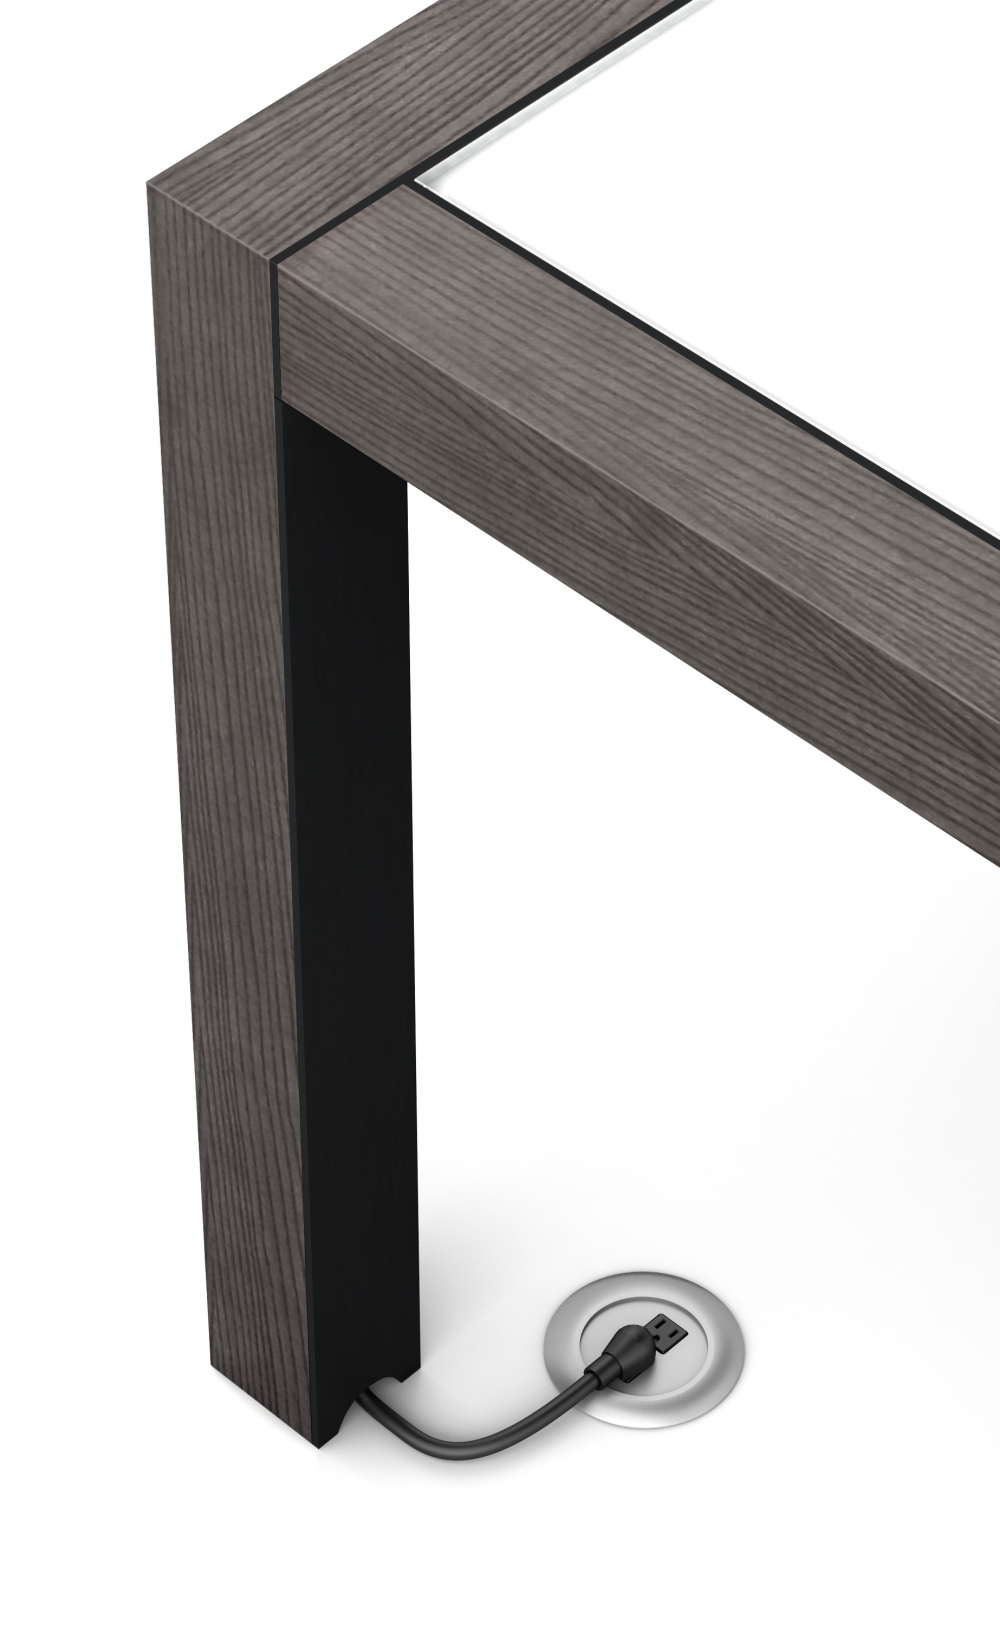 Preview of Epono   Community Table   Char Ash Veneer   Black Powdercoat Metal Accents   Wire Management   Standing Height